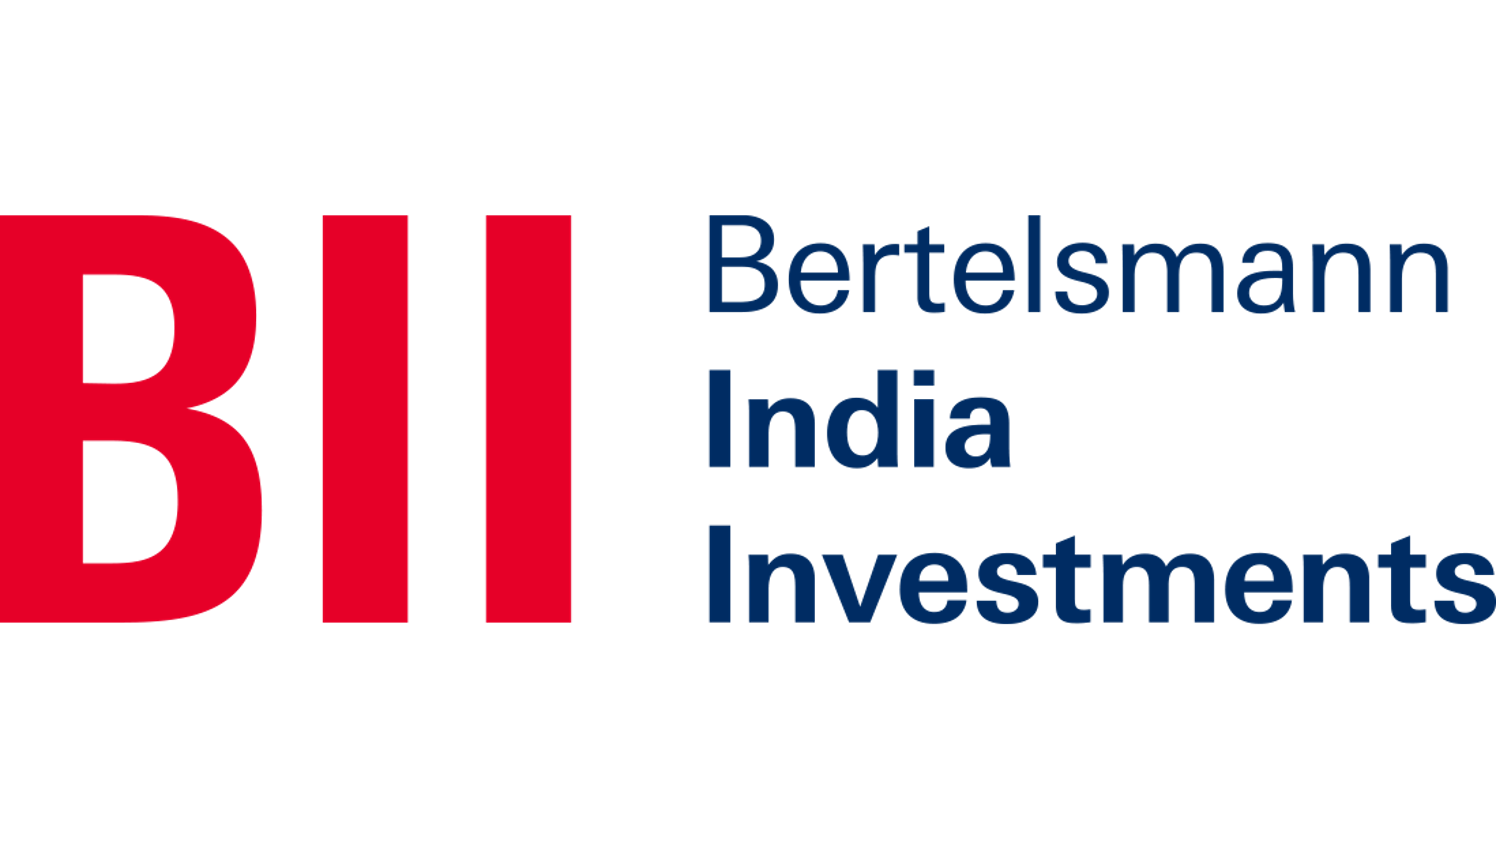 Bertelsmann Investments - Bertelsmann SE & Co  KGaA